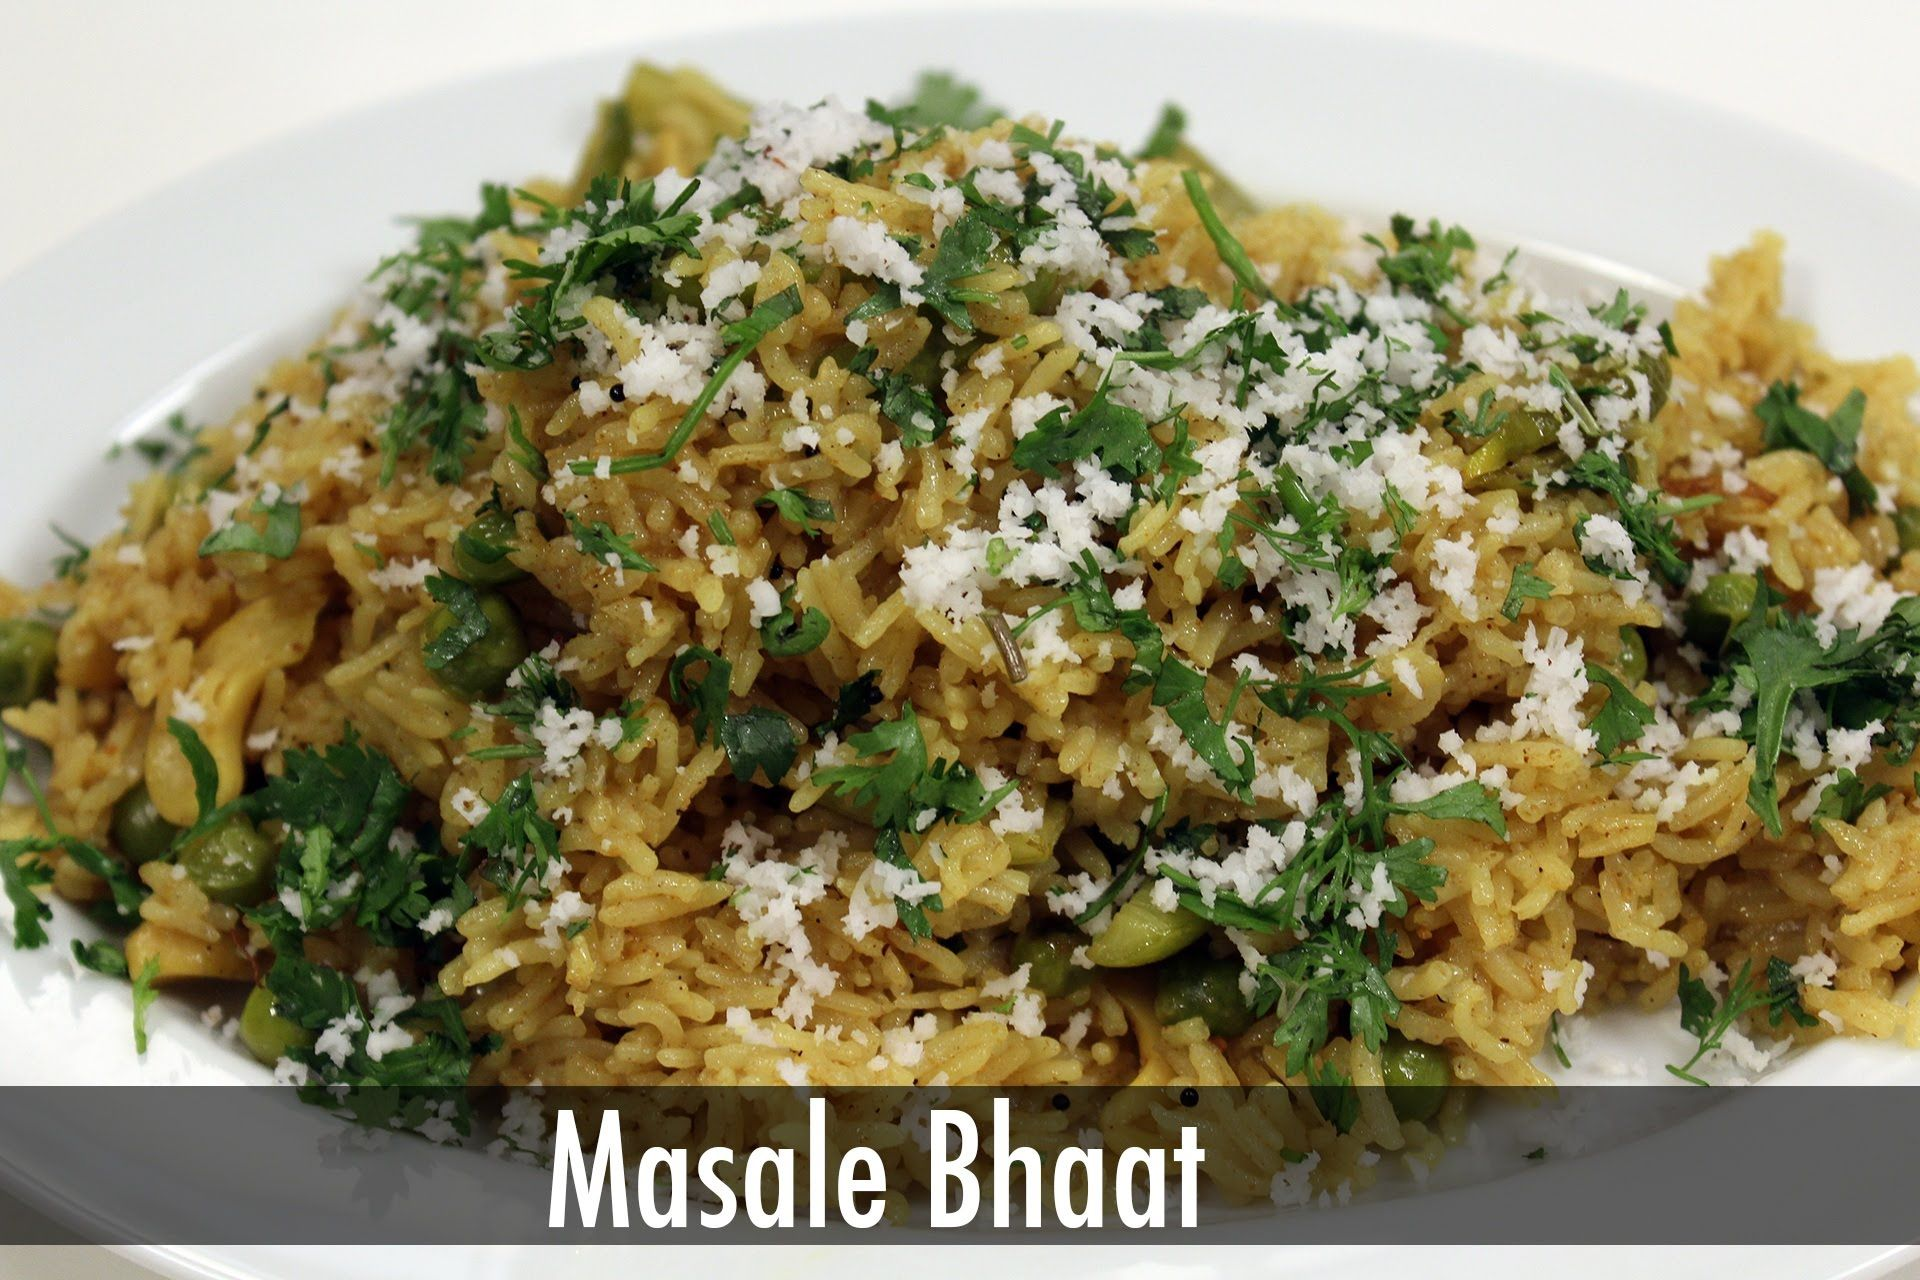 Masale bhaat simple indian recipes sanjeev kapoor khazana food masale bhaat simple indian recipes sanjeev kapoor khazana forumfinder Choice Image